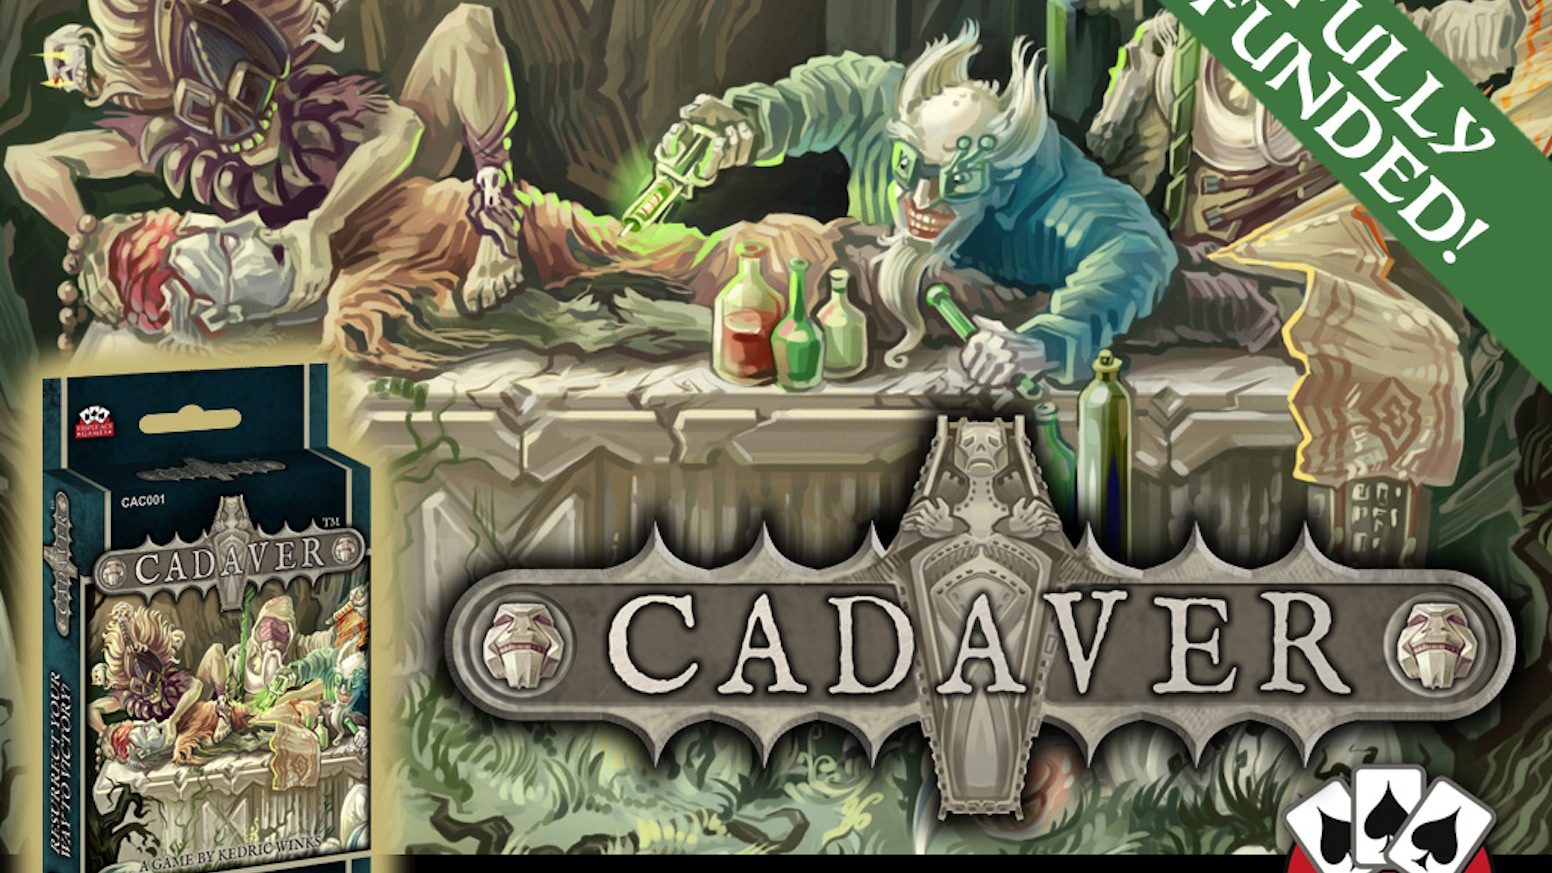 Cadaver is a lighthearted game of friendly necromancy! Players compete to resurrect as many bodies as possible!